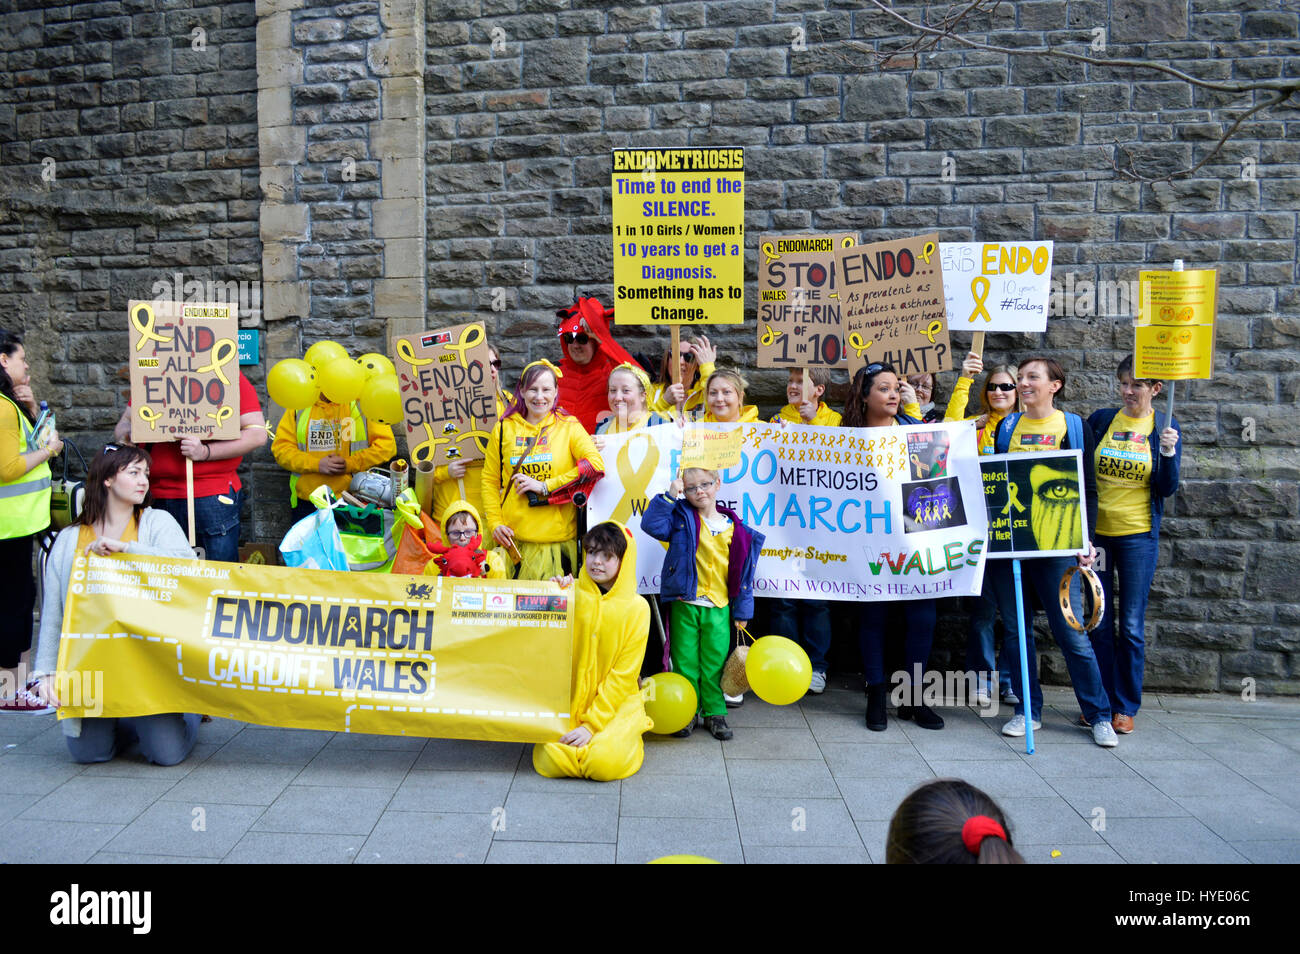 CARDIFF, UK. 25 March 2017. Around 200 were expected to be marching for Endometriosis on Saturday, in order to raise - Stock Image